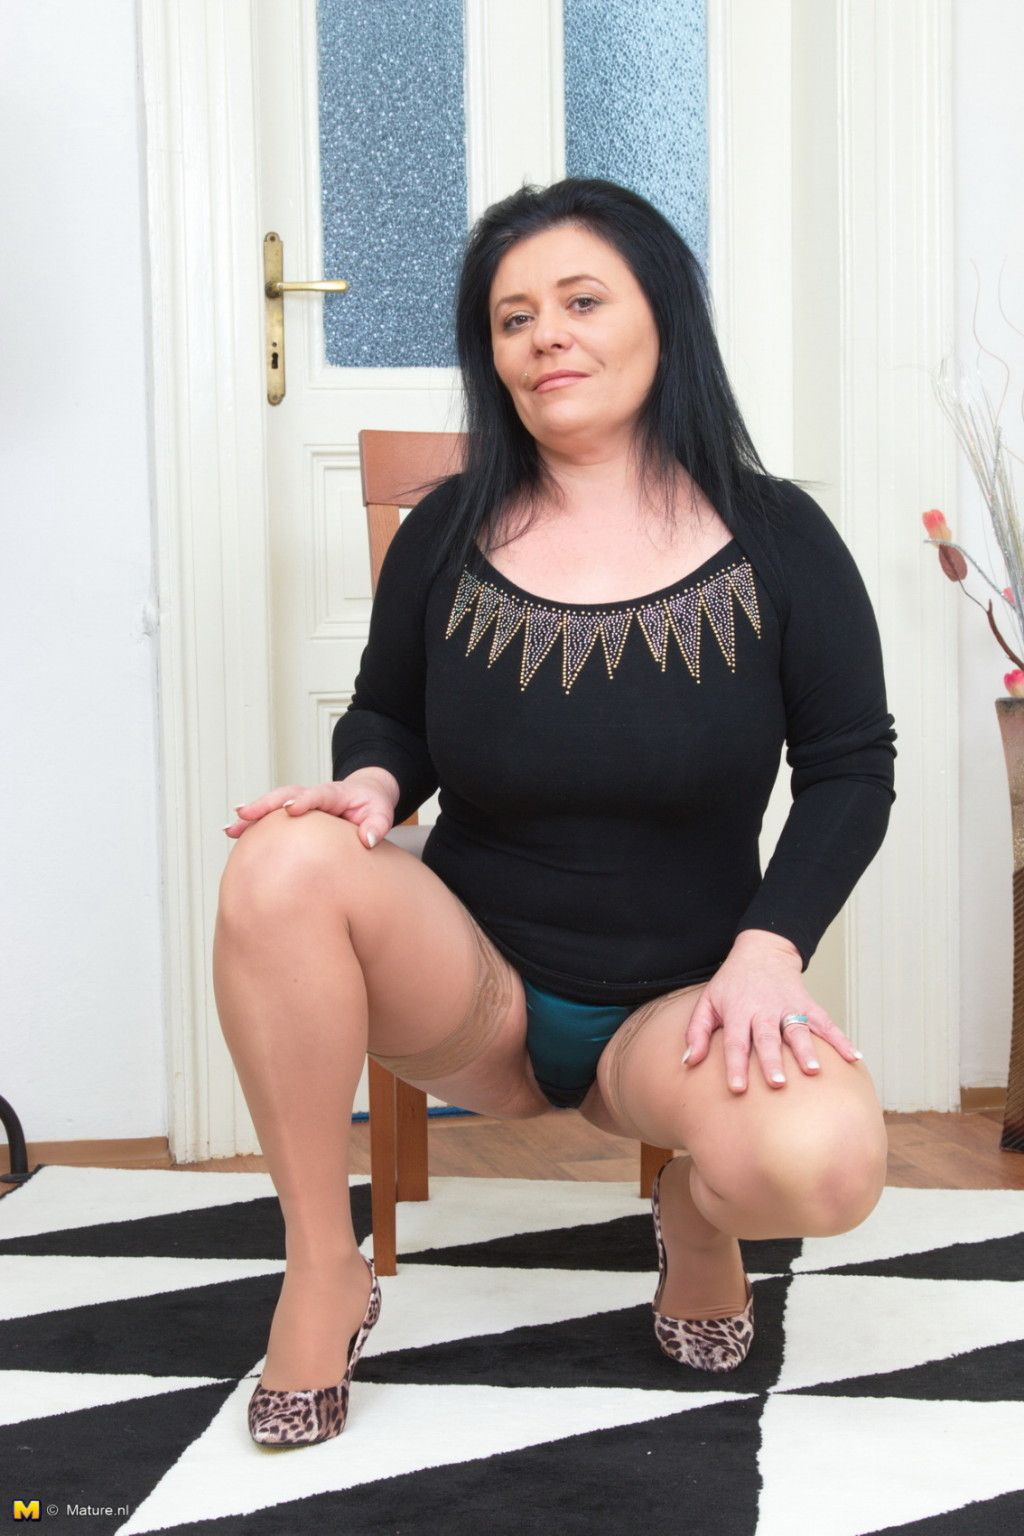 Chubby housewife stripping and teasing